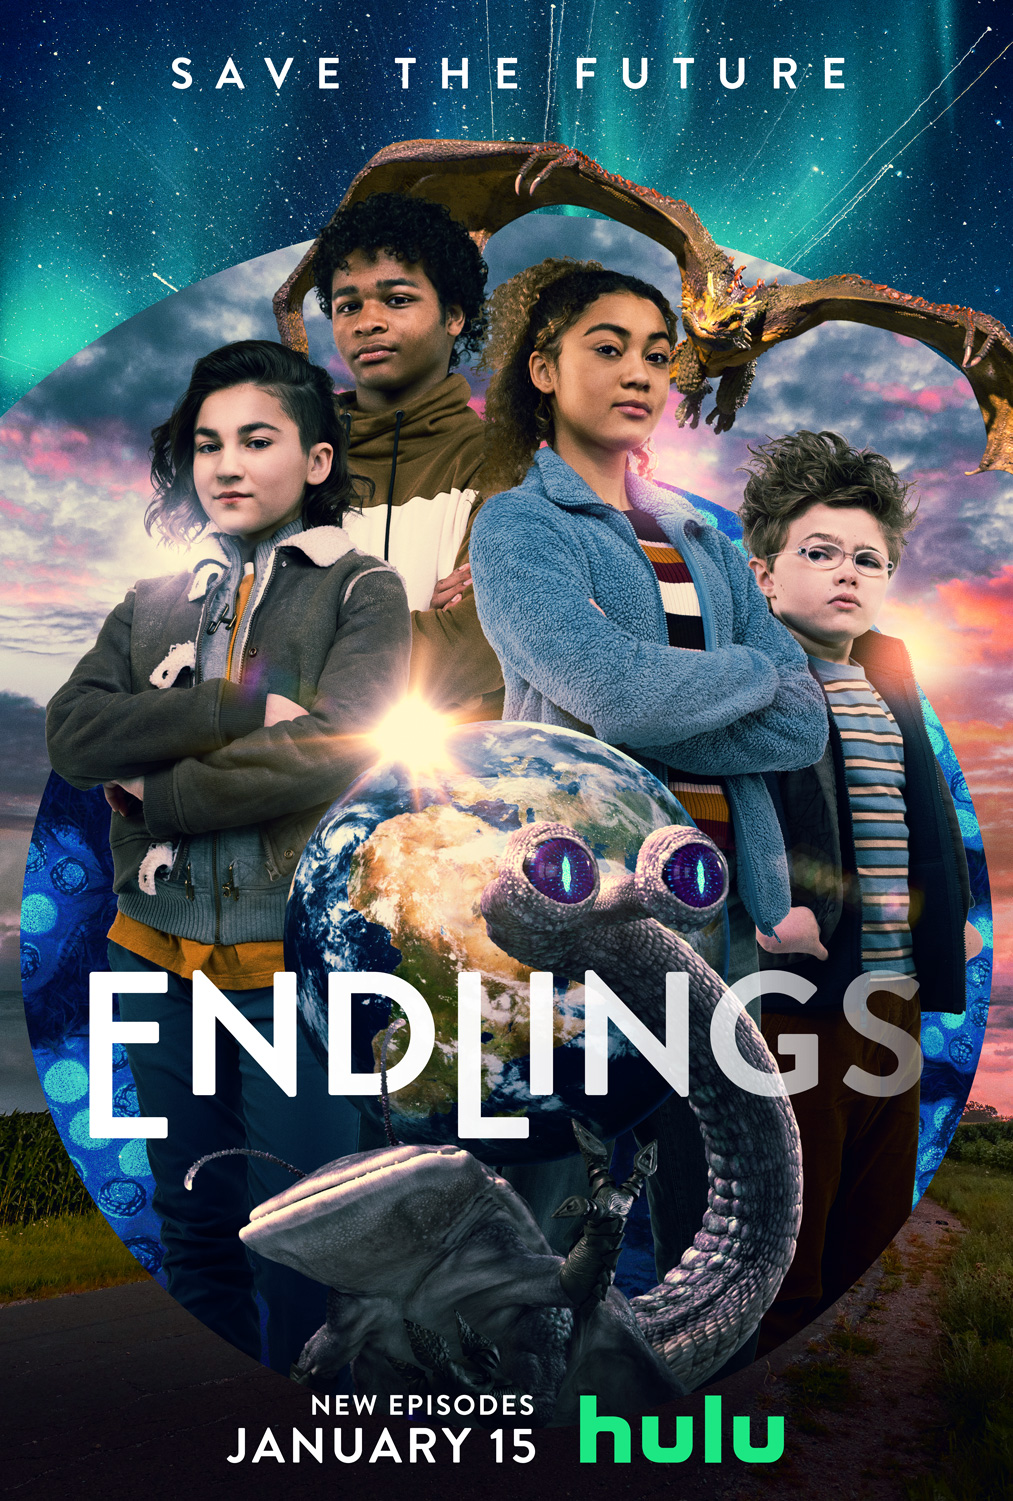 Endlings Season 2 TV Poster